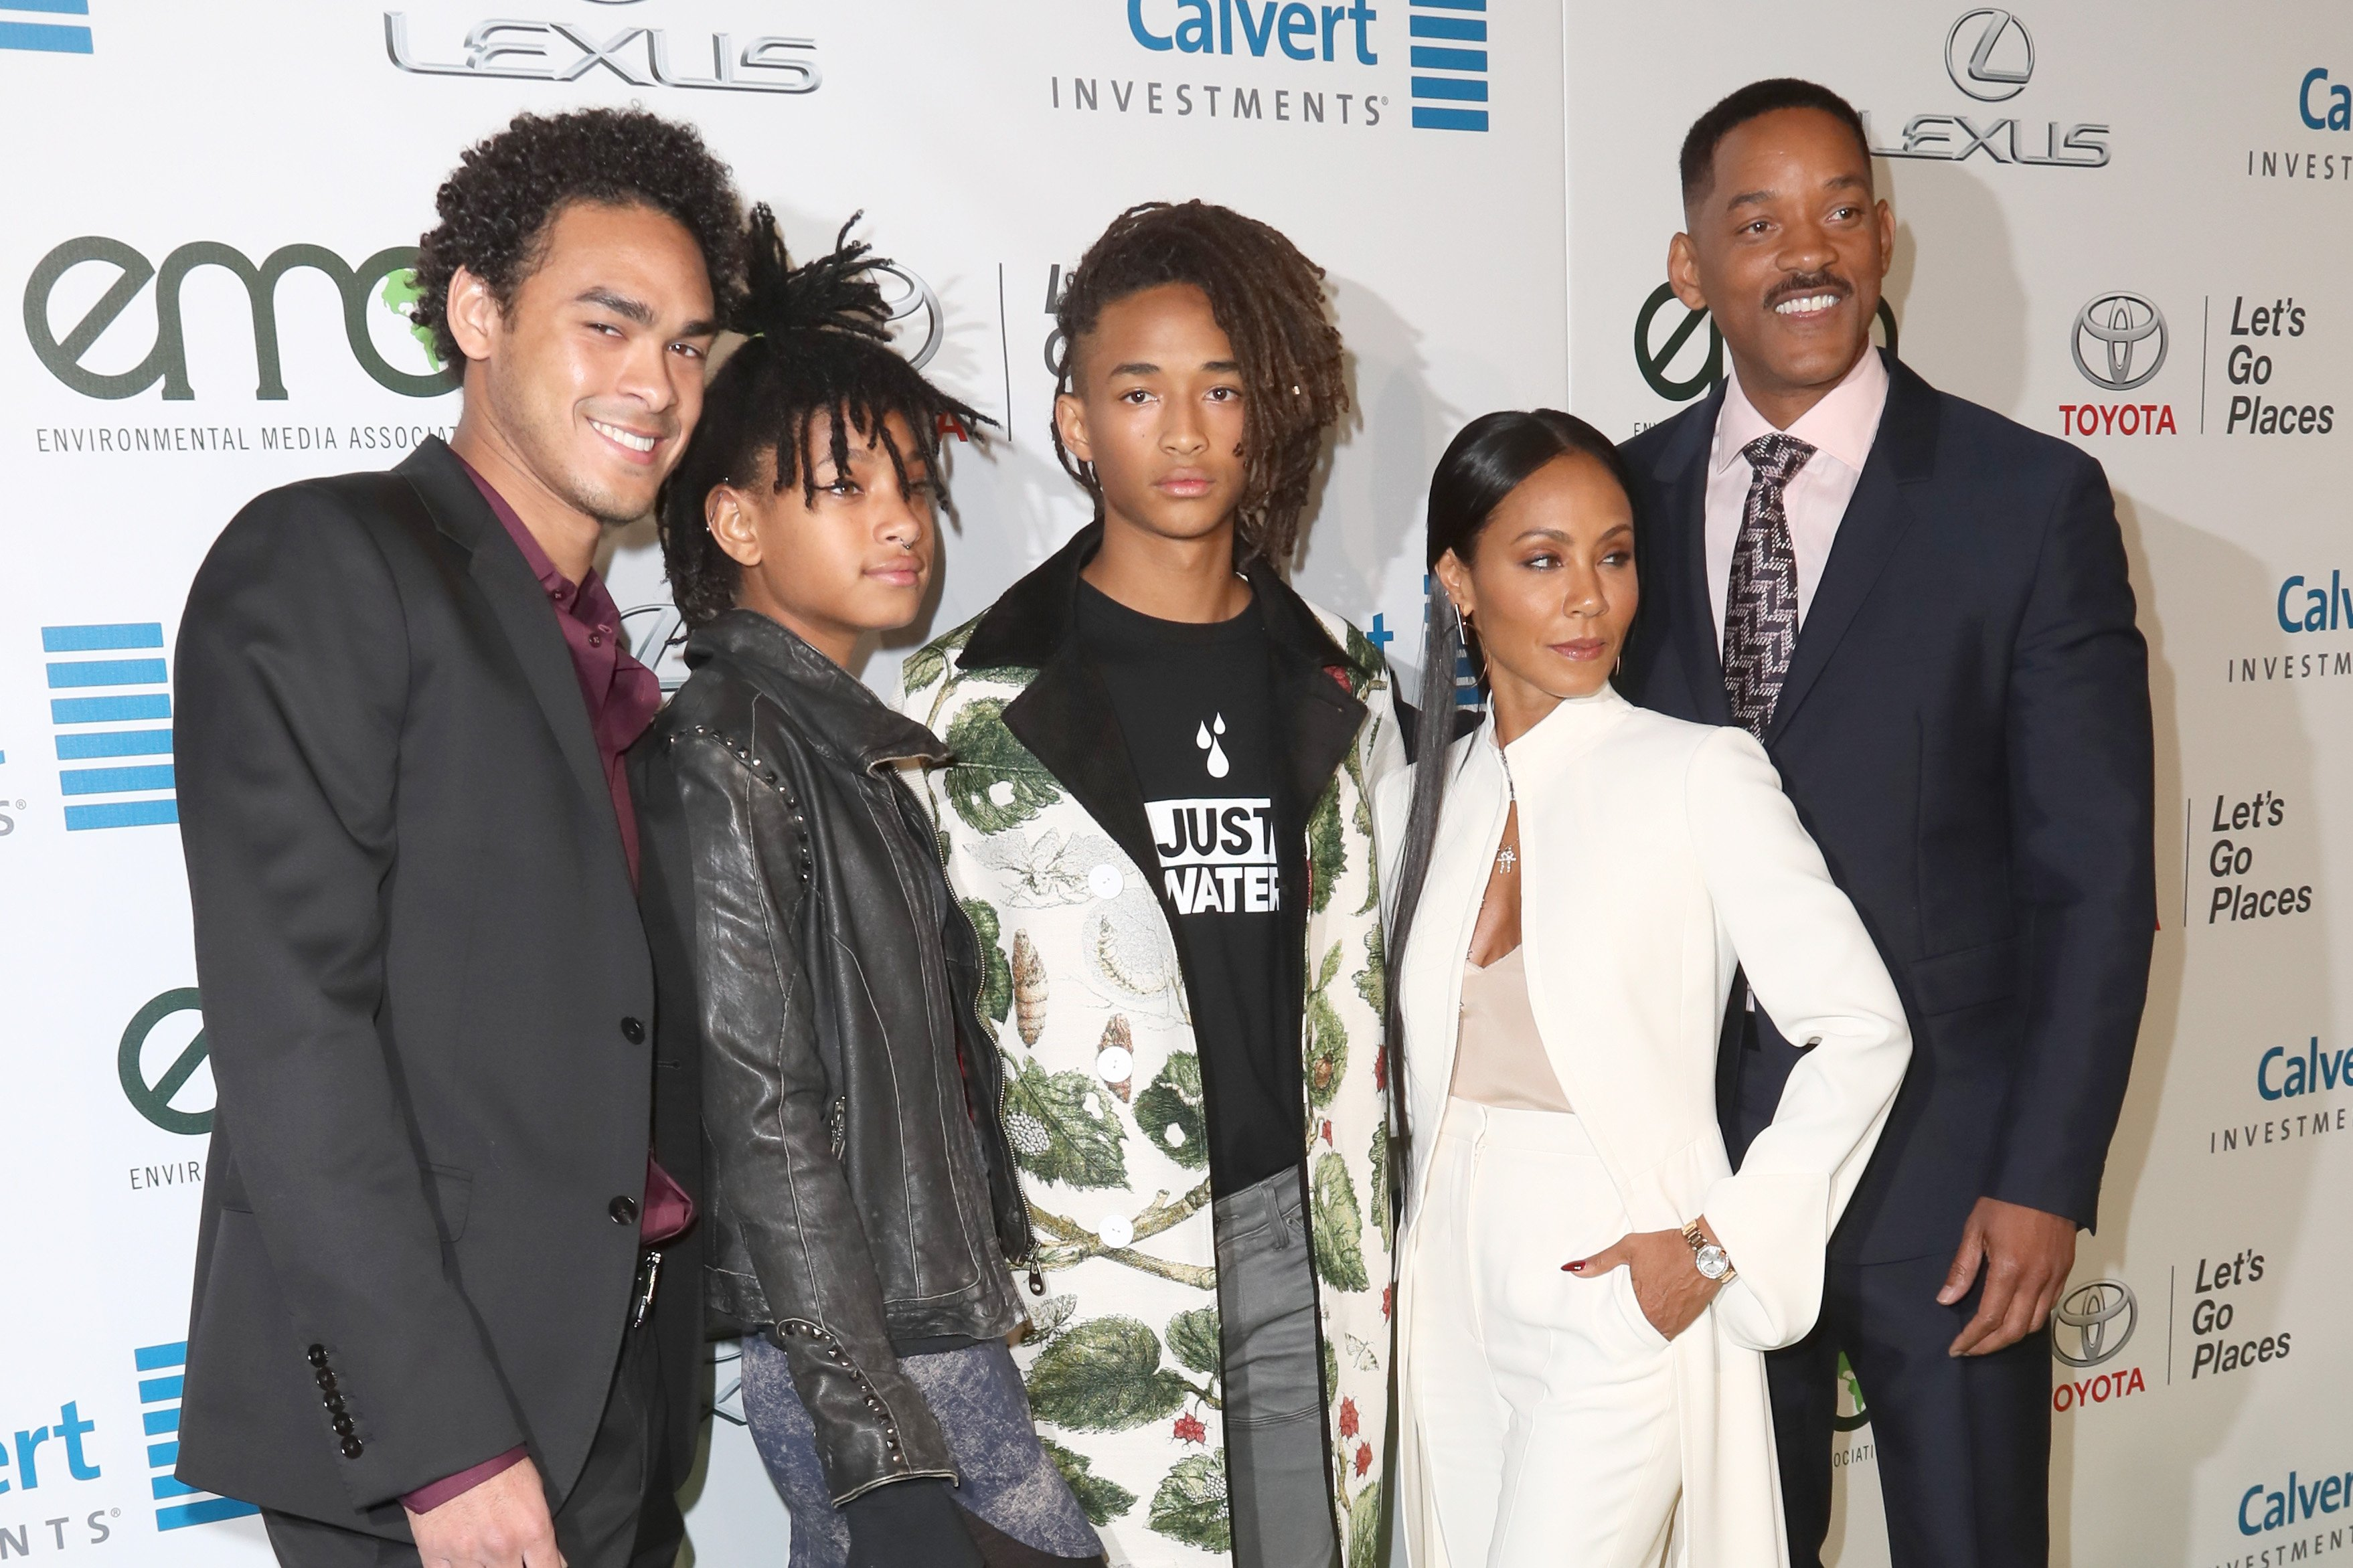 (L-R)Trey Smith, Willow Smith, Jaden Smith, Jada Pinkett-Smith & Will Smith at the 26th Annual EMA Awards on Oct. 22, 2016 in California.  Photo: Getty Images